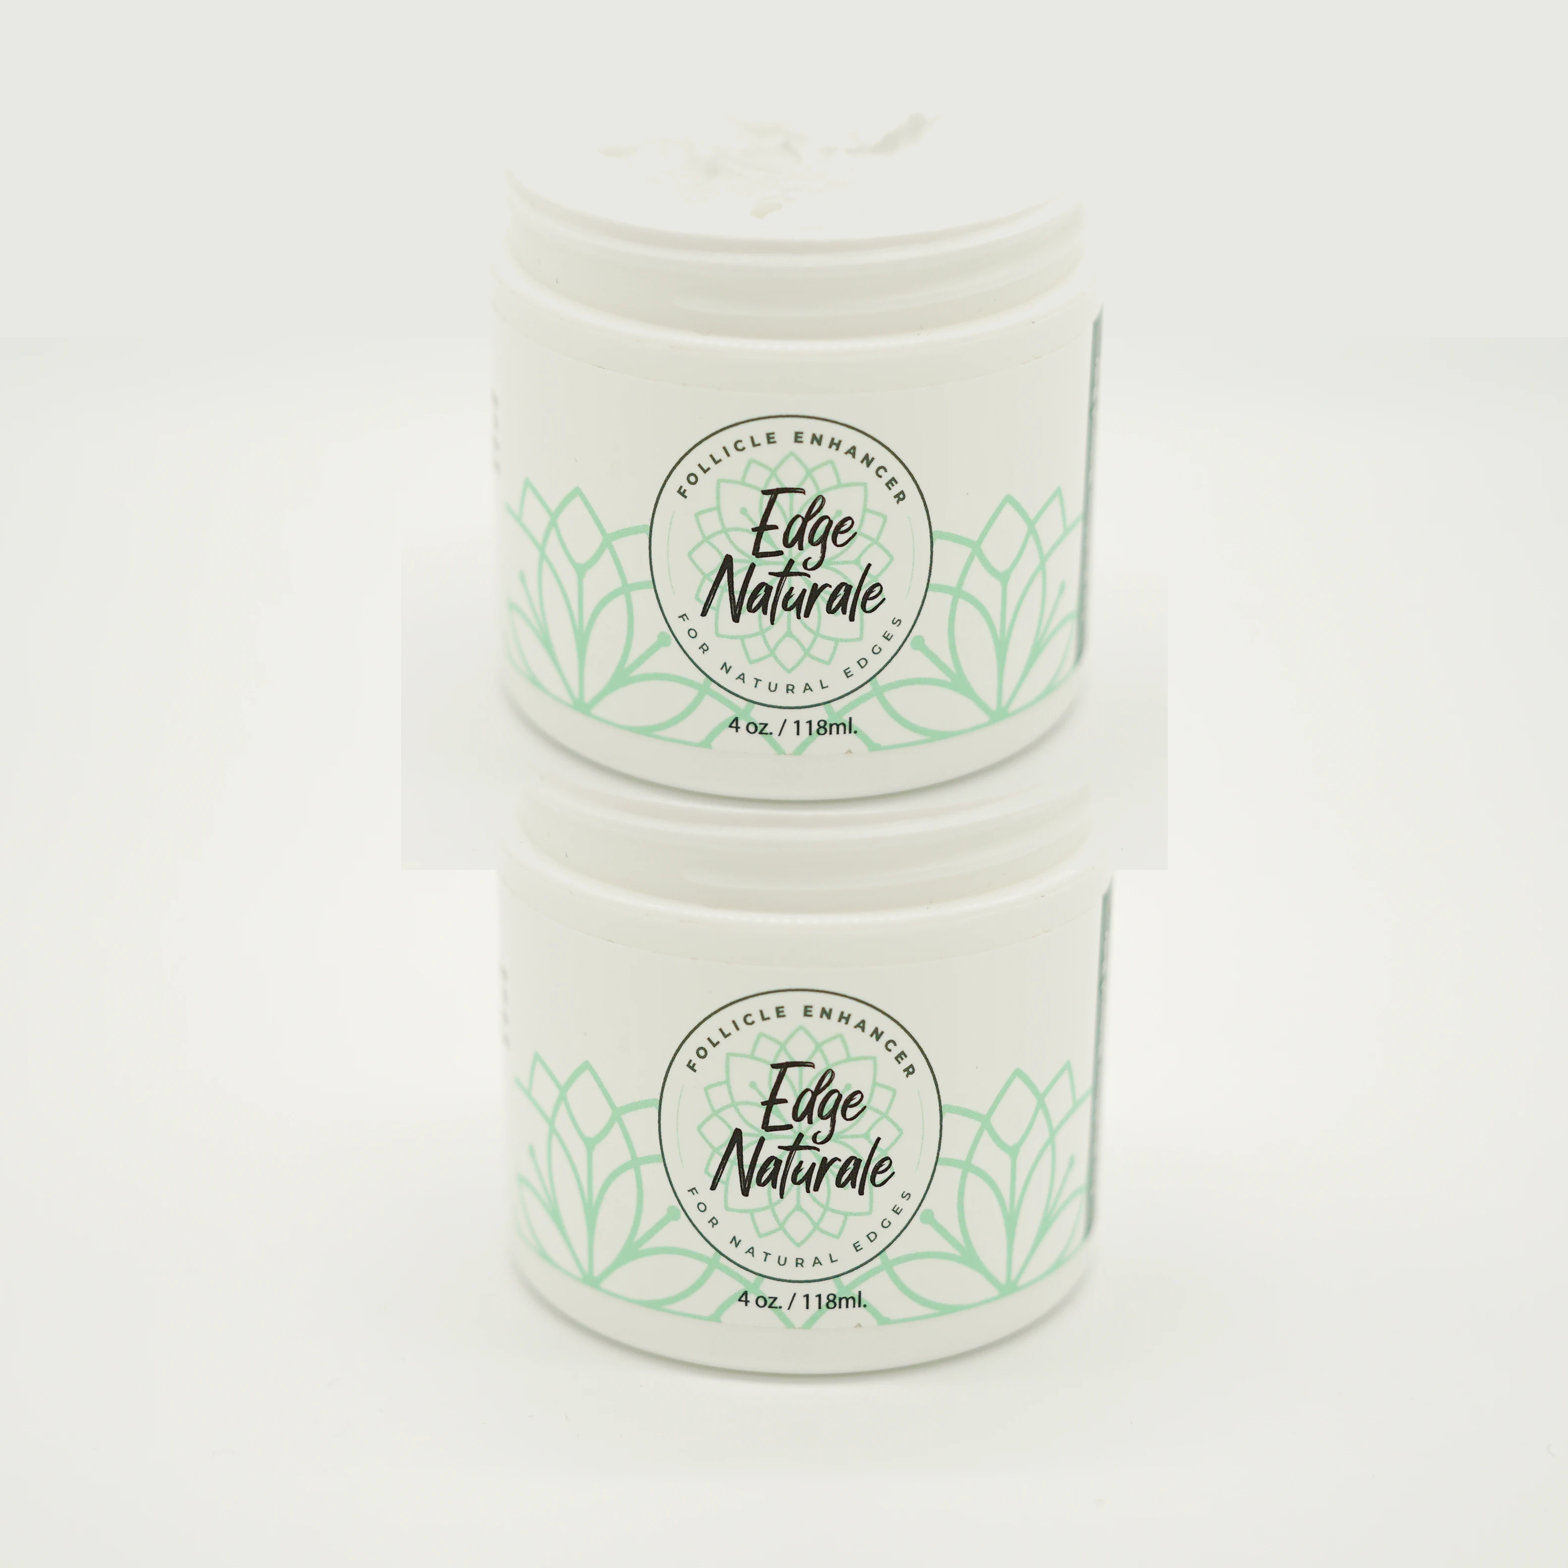 Follicle Enhancer 4oz. - 2 Jars - 30%OFF